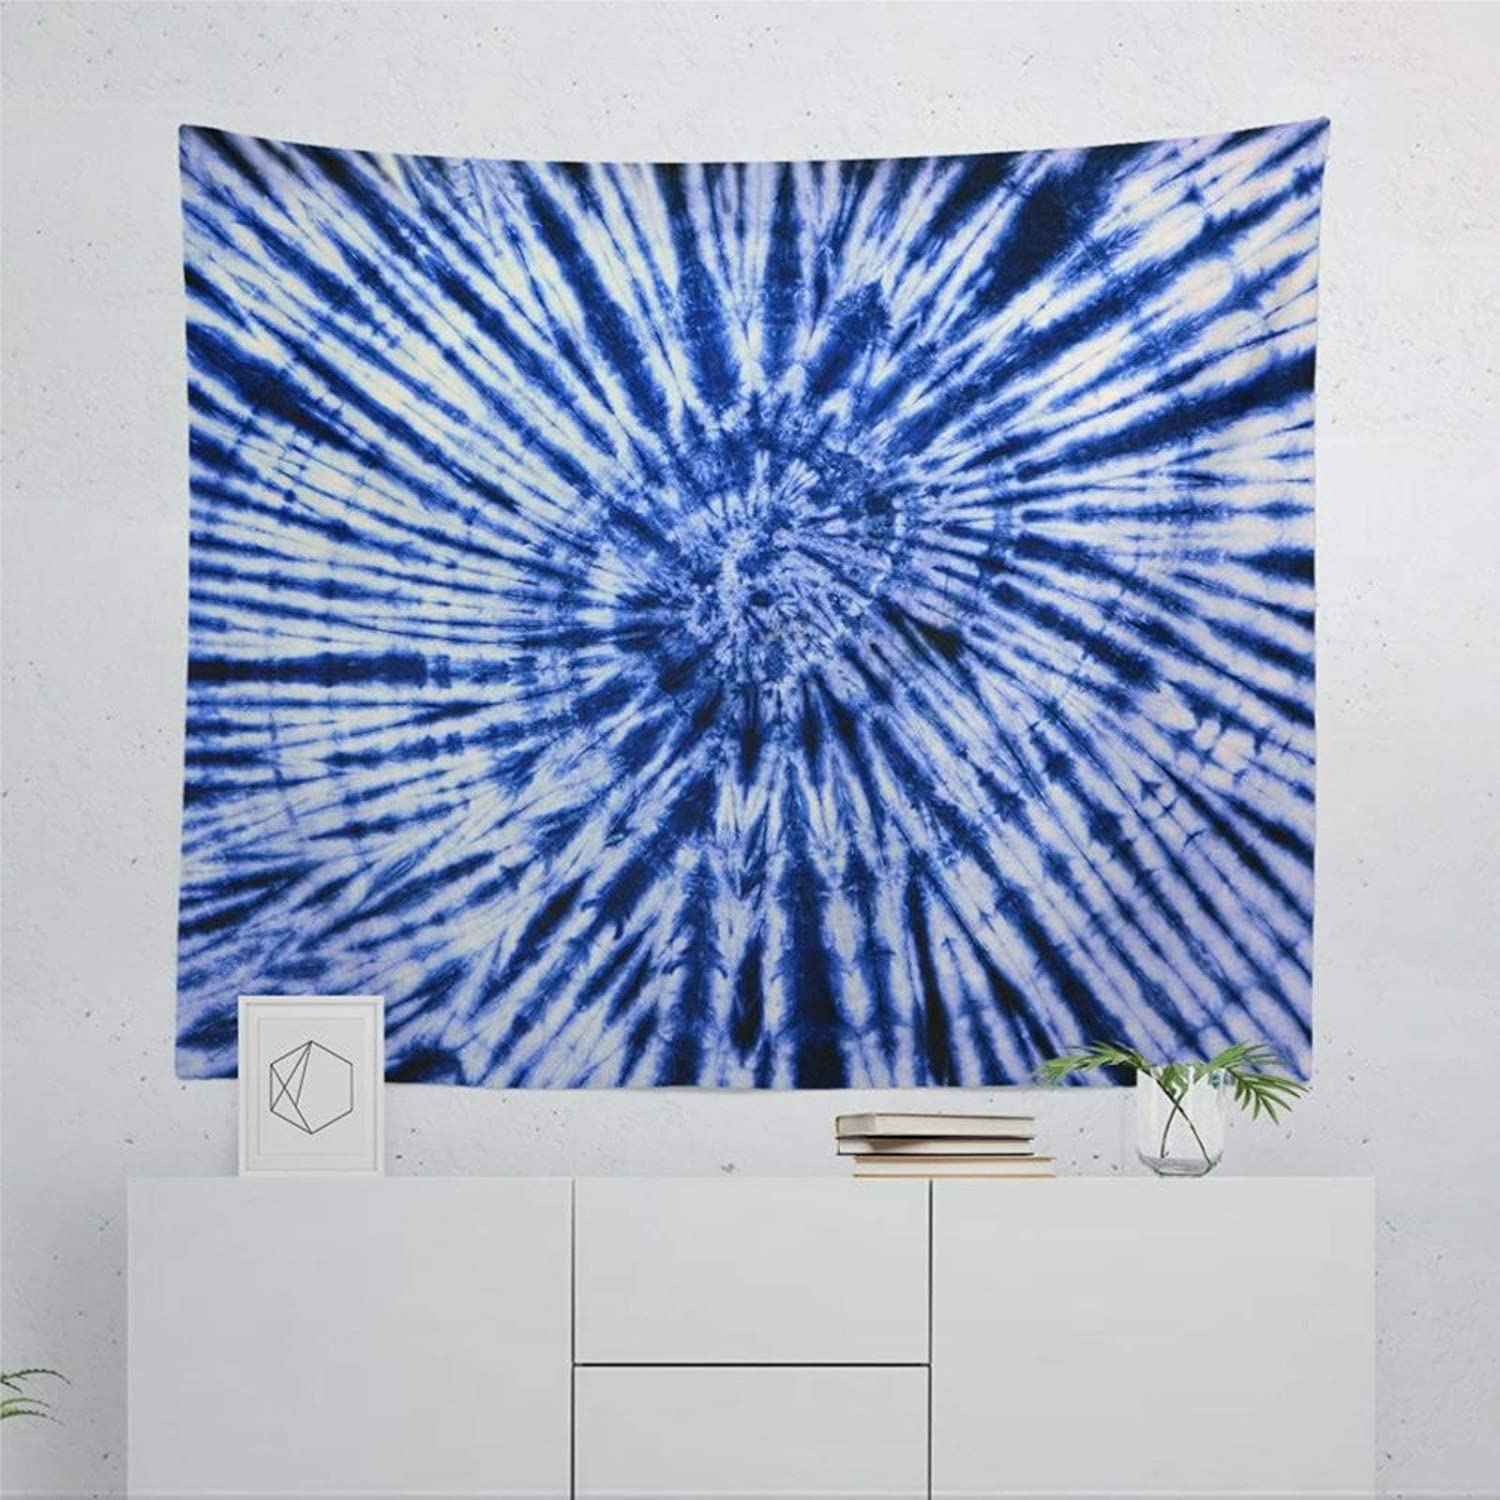 """DONL9BAUER Soft Wall Tapestry, Tie Dye Tapestry Hippie Tapestry Wall Decor All Season Wall Hanging Art Room Tapestries Throw Blanket for Couch, Sofa, Travel 60""""x80"""""""